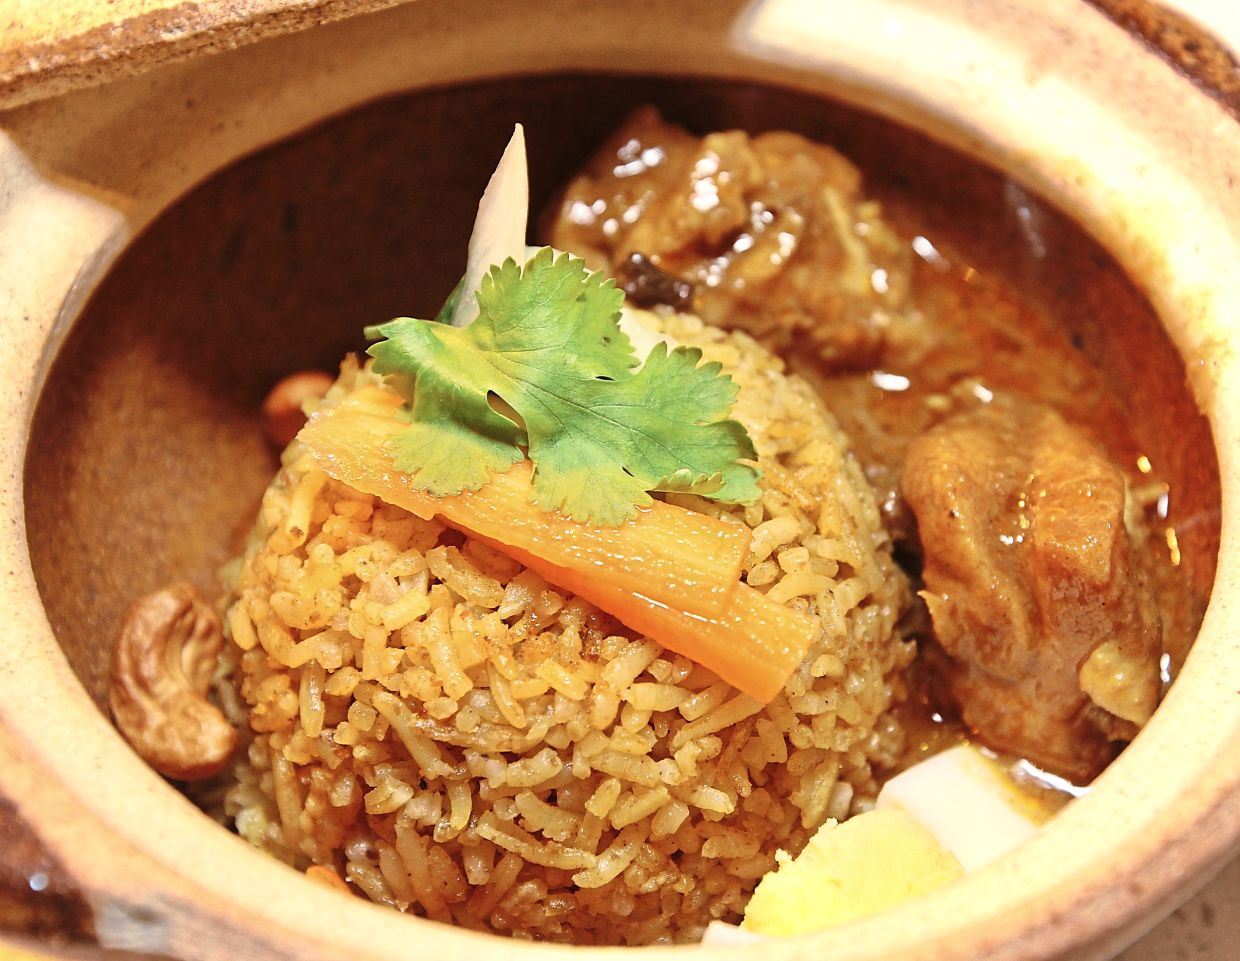 Nook's Legendary Briyani Gam is served in a mini claypot with cashew nuts.